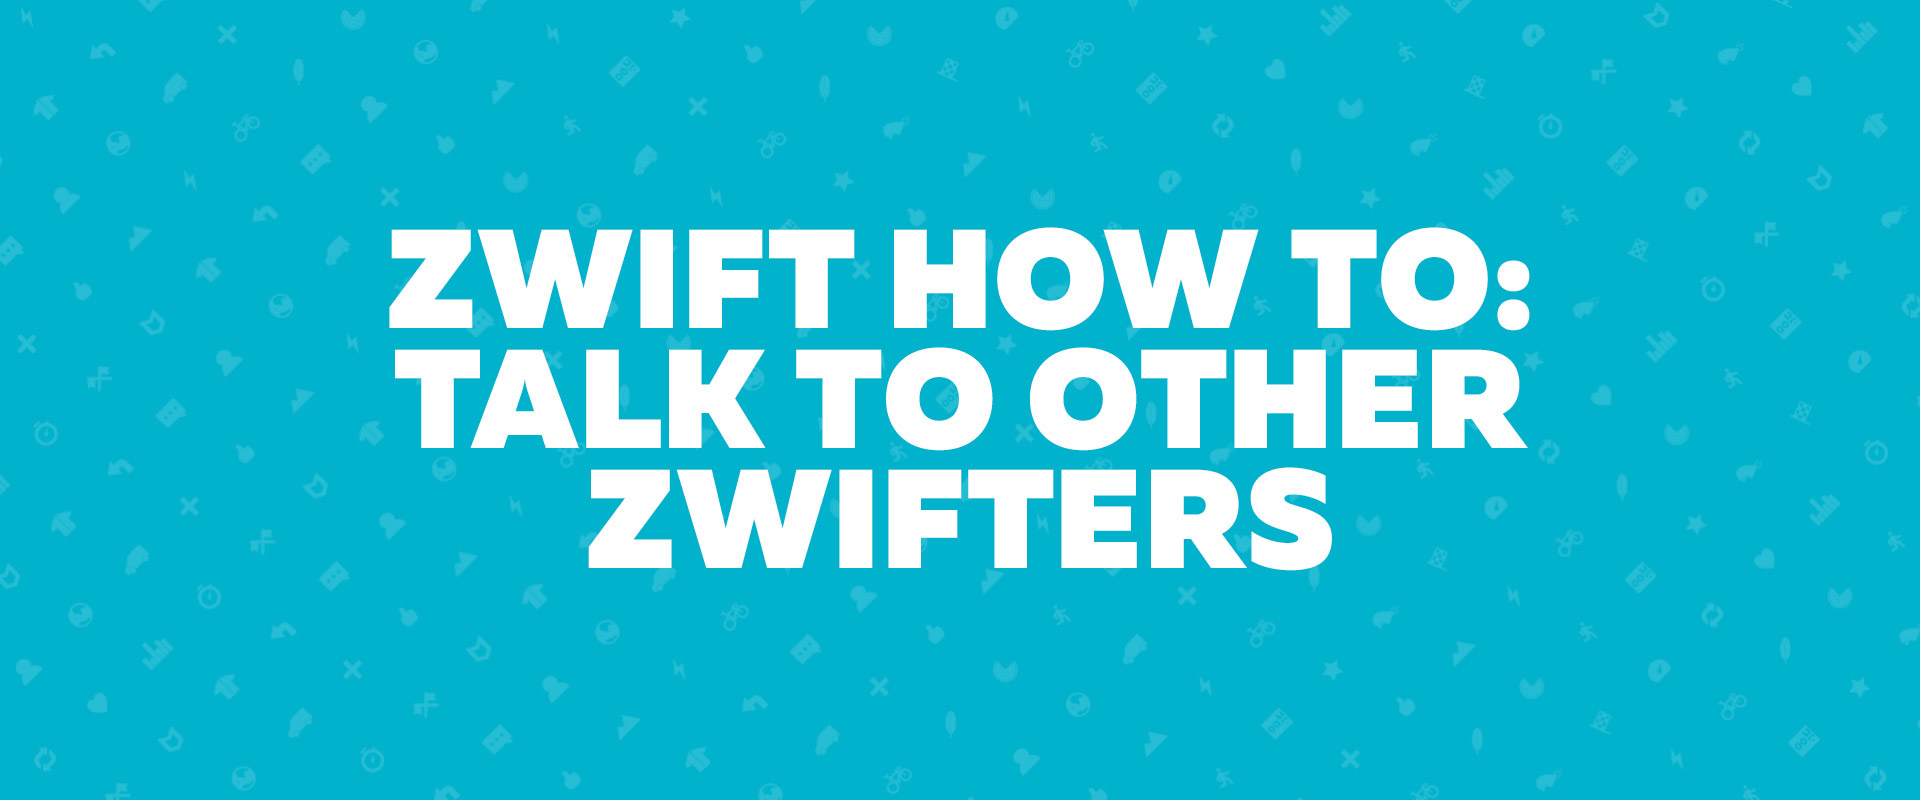 Zwift How-to: Talk to other Zwifters | Zwift